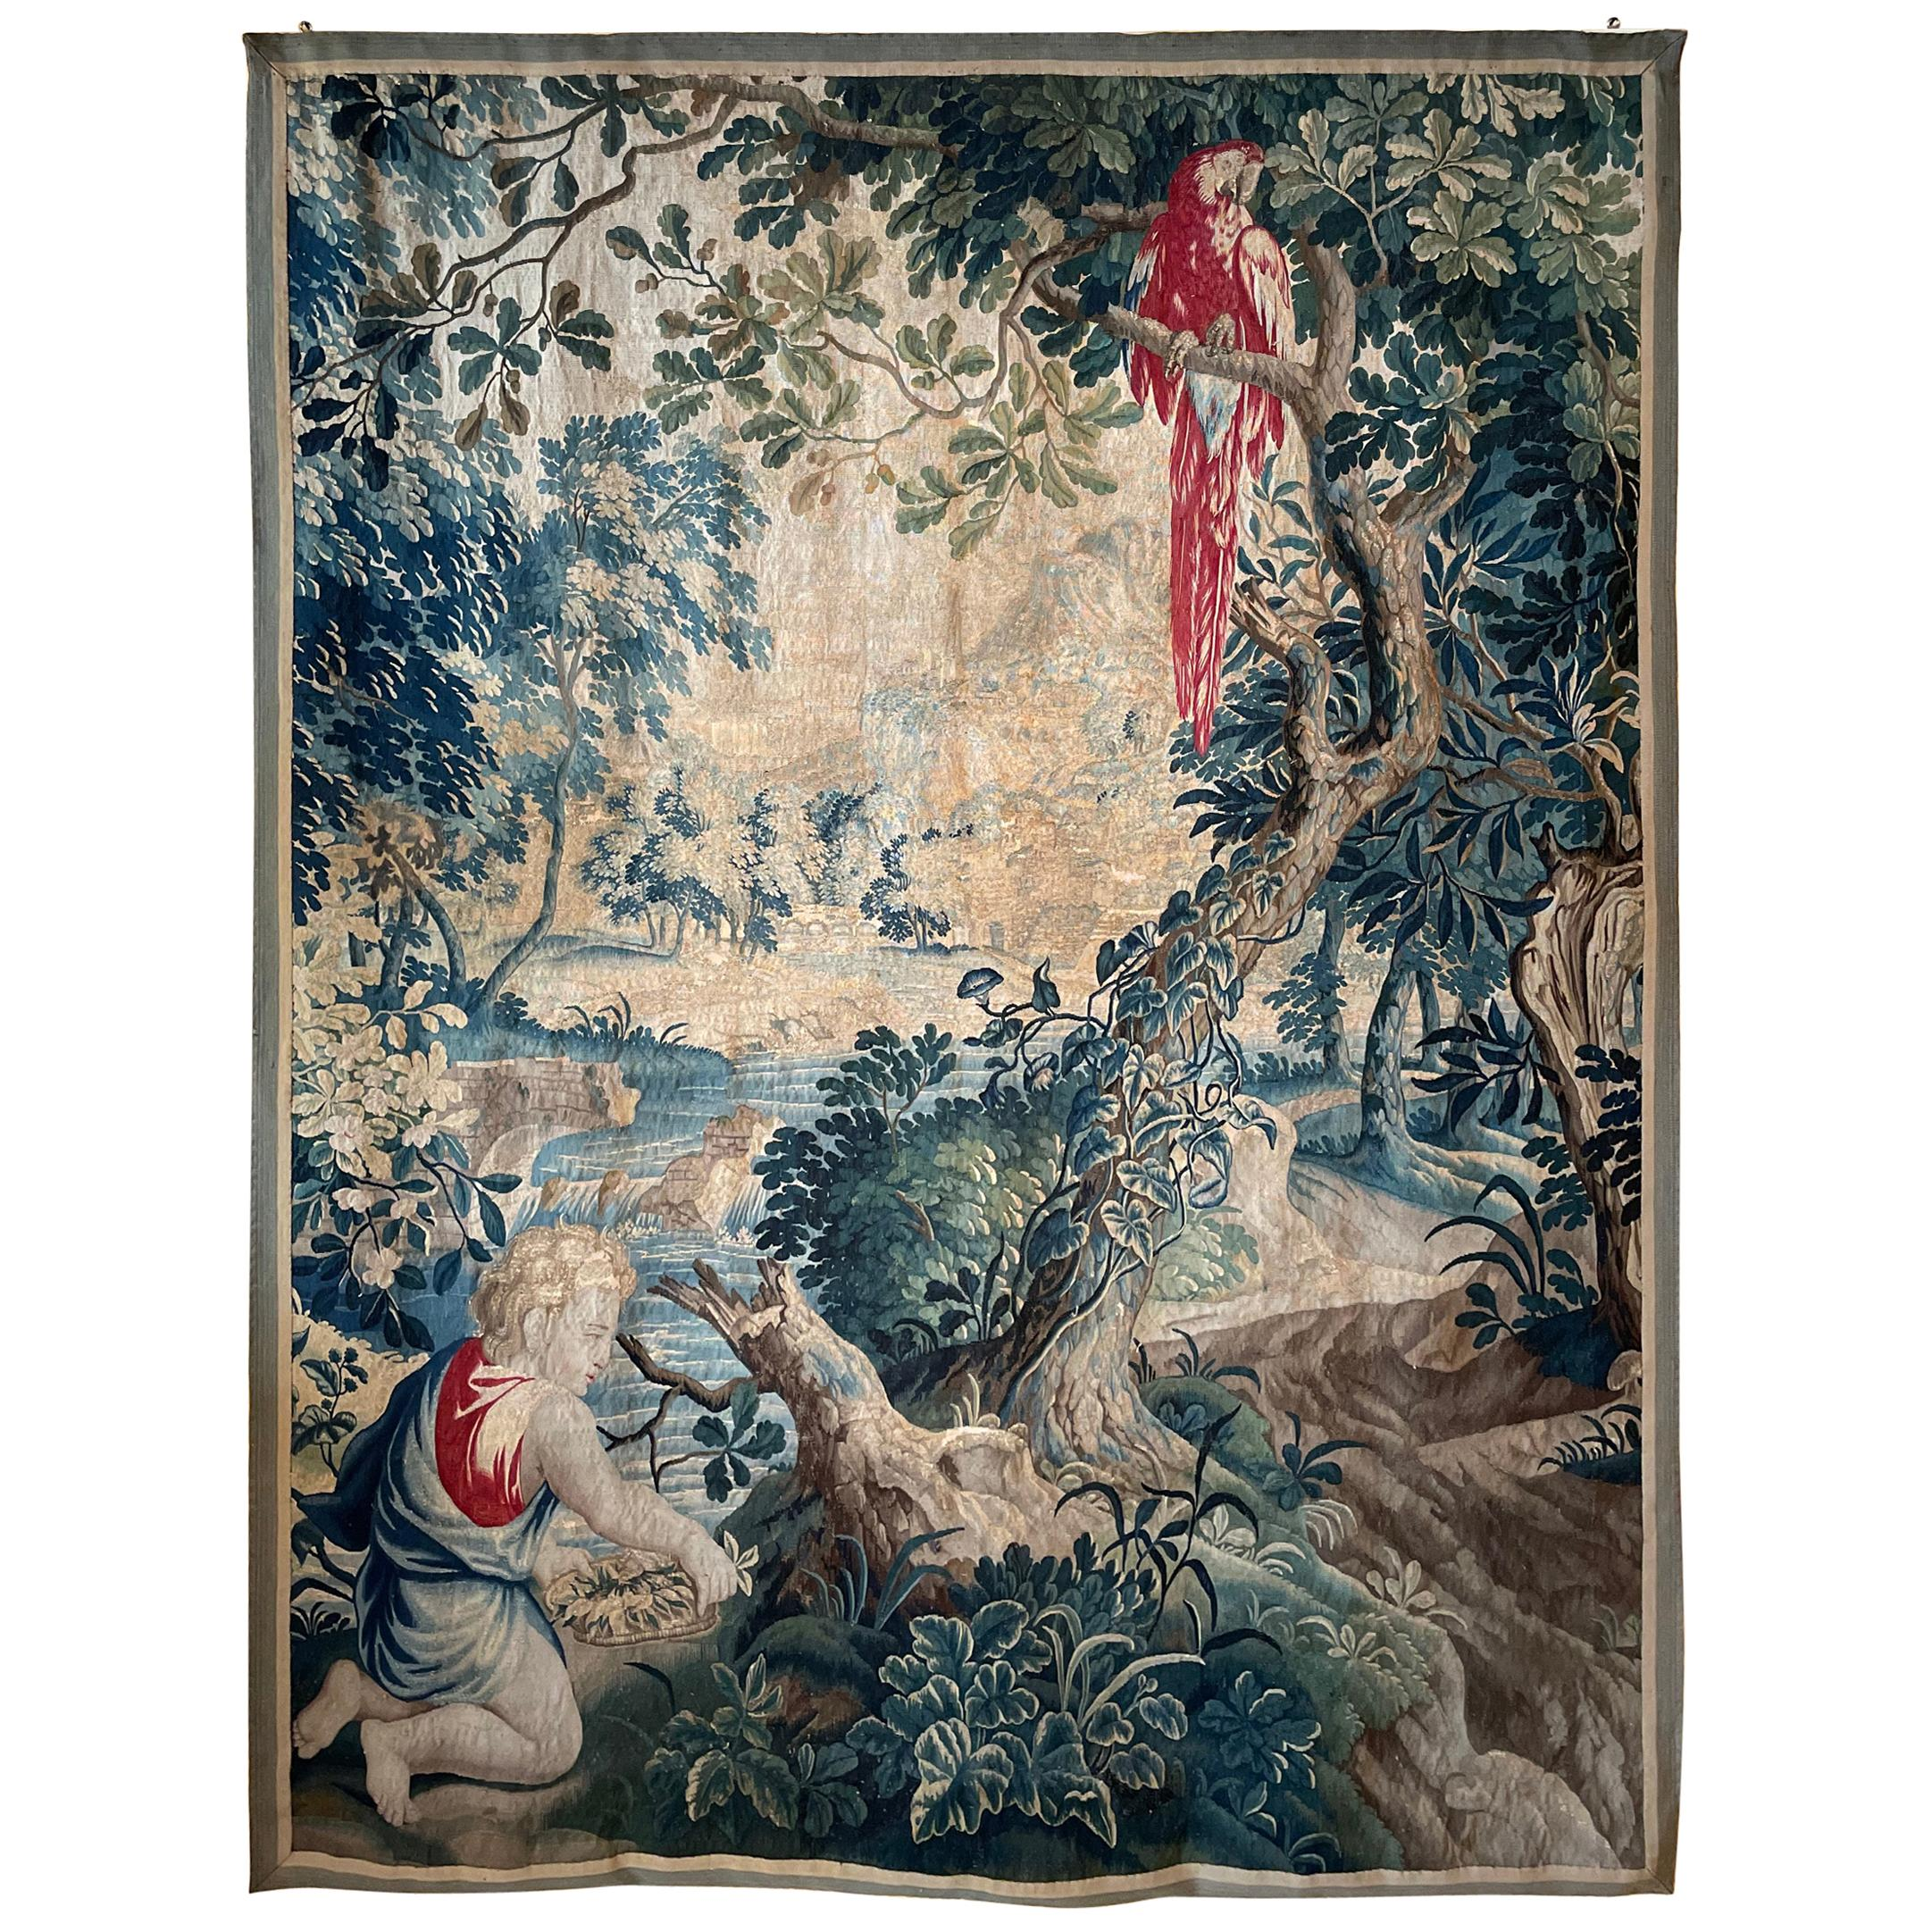 Brussels Tapestry from the 17th Century, Quarter of Point